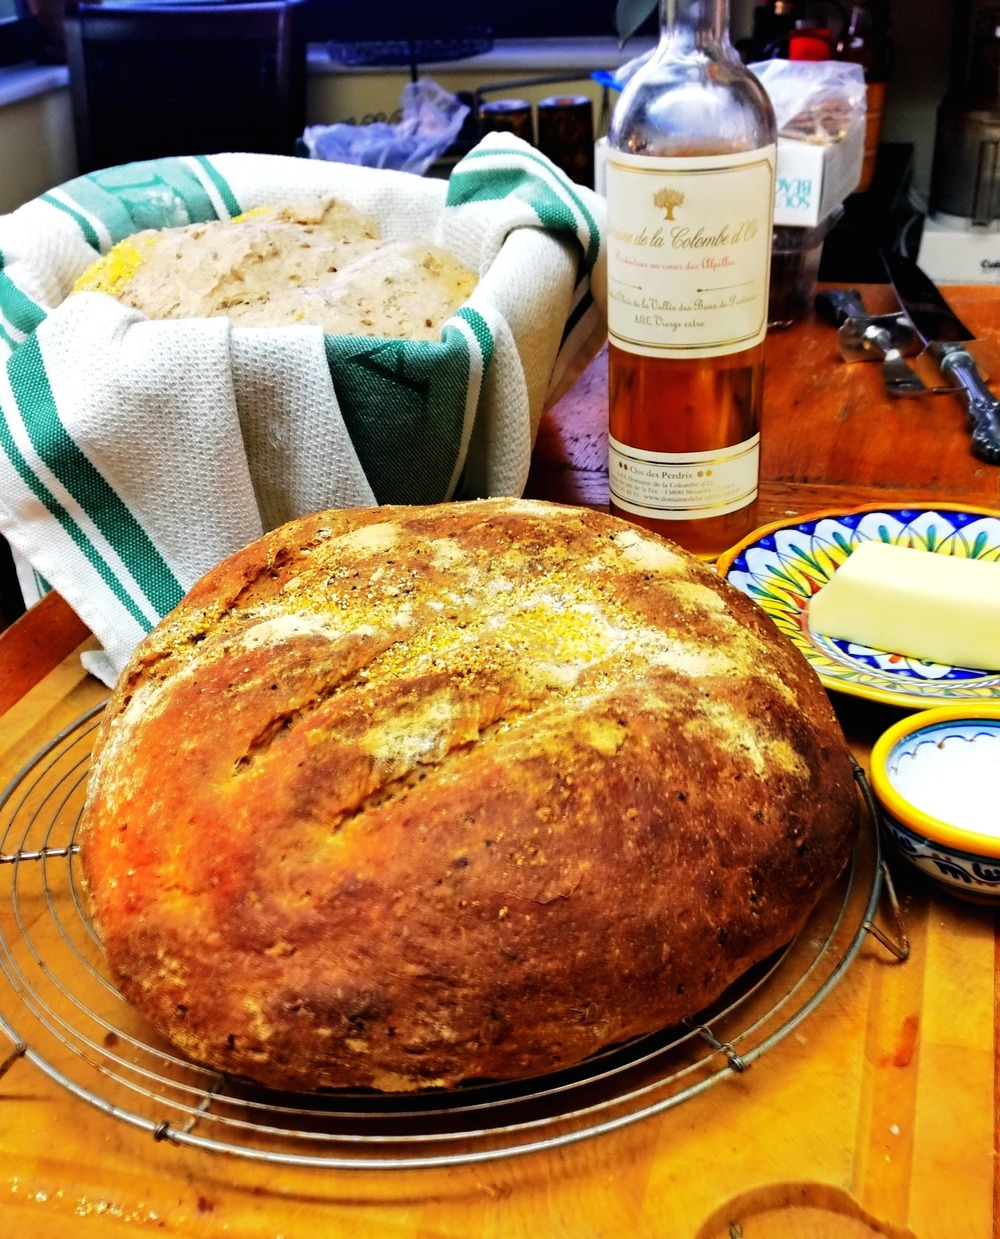 My spent grain loaf, baked in the foreground an a risen loaf about to be put on the baking stone in the background, with the best accompaniments: salt, butter and olive oil